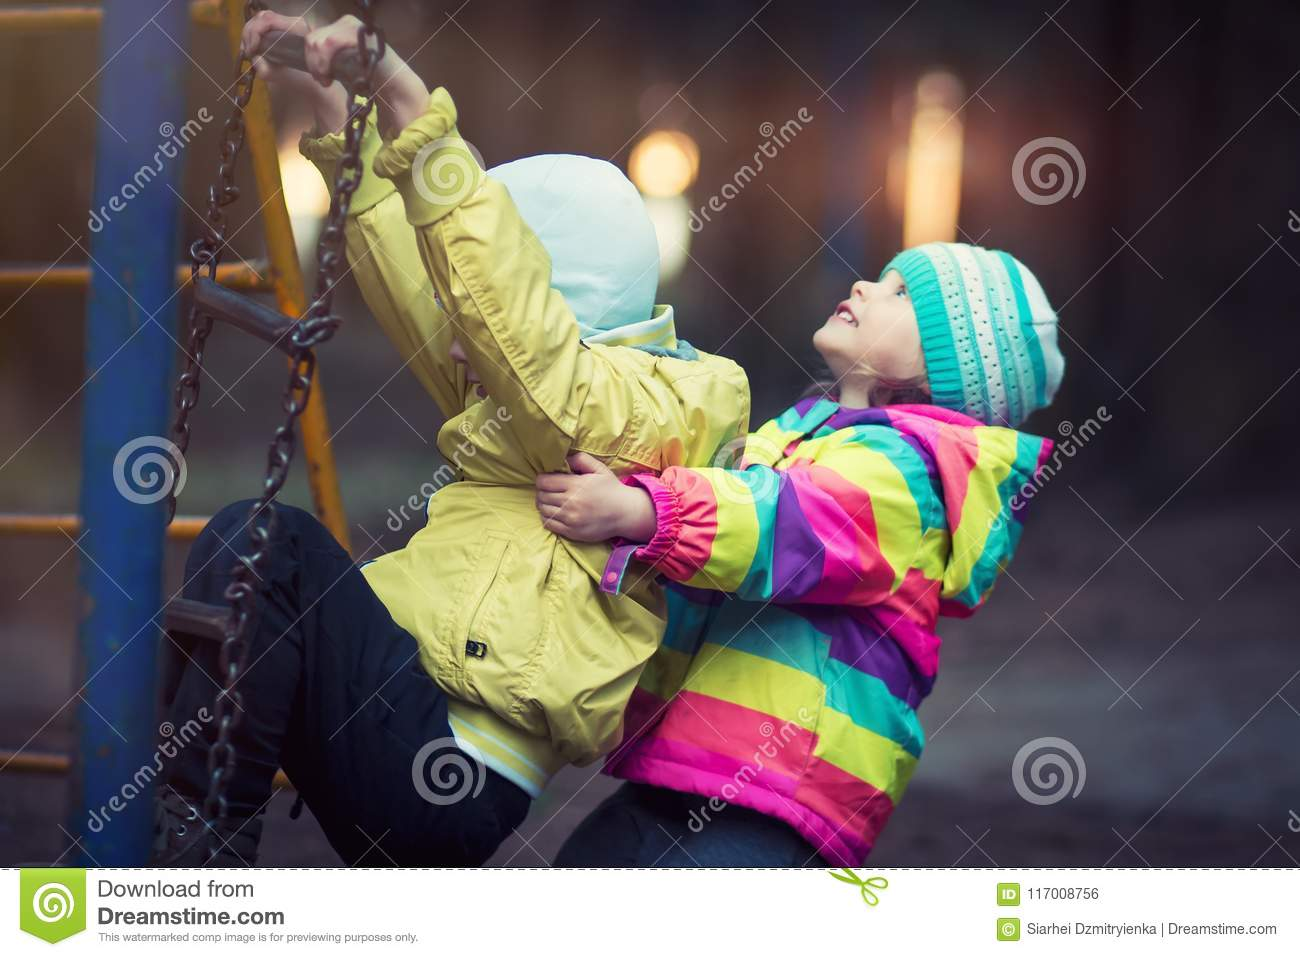 Little children play in playground in evening in park on background of shining lights.